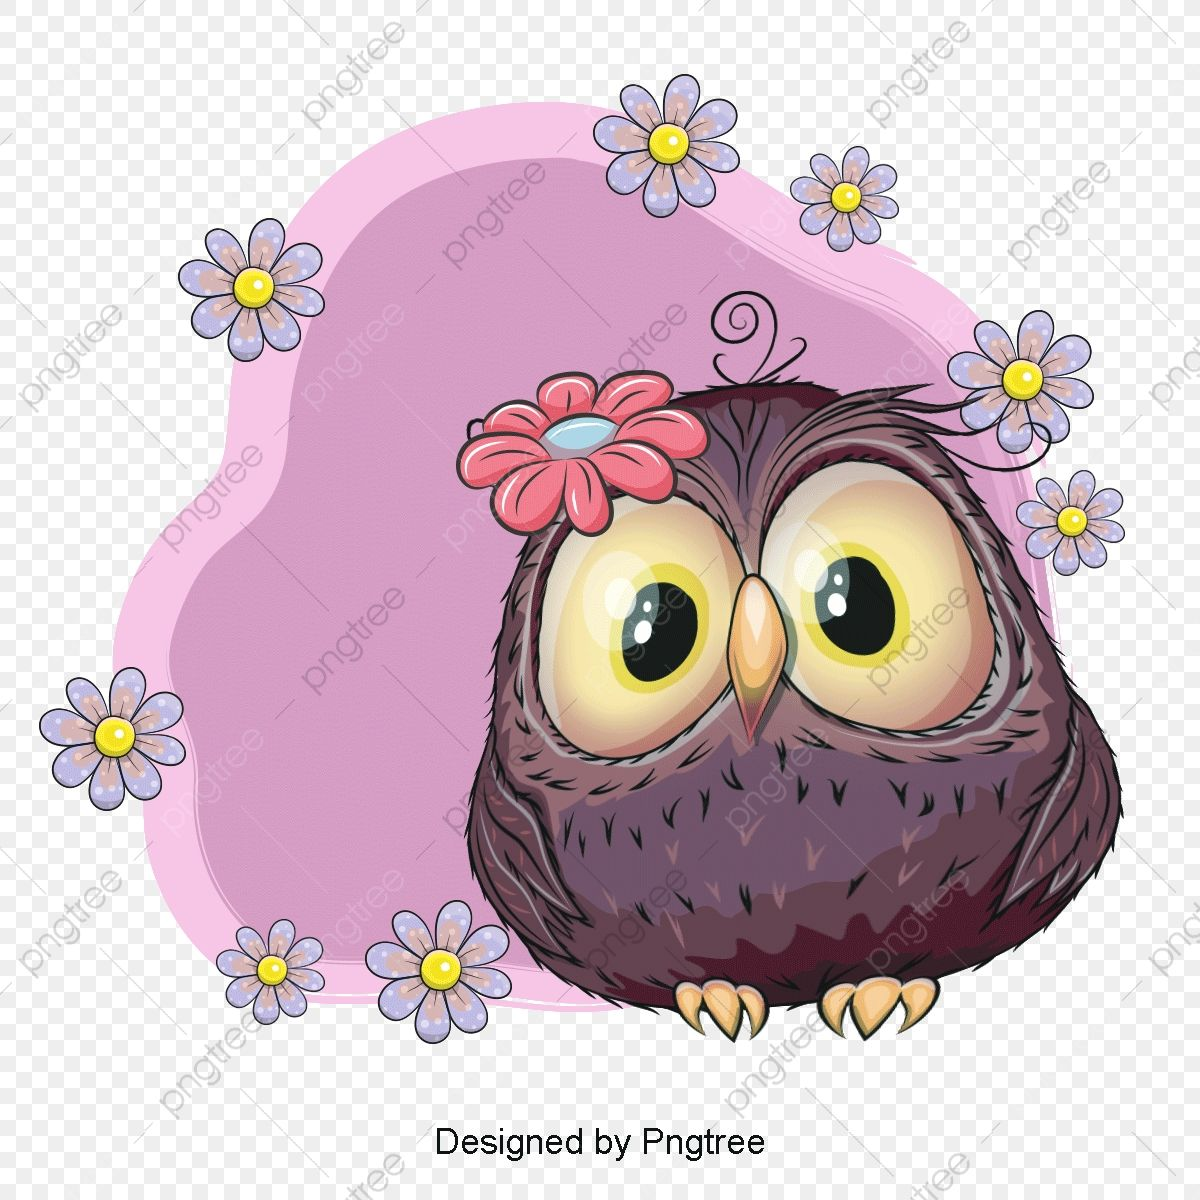 Vector Owl Owl Clipart Cute Owl Cartoon Owl Png Transparent Clipart Image And Psd File For Free Download Owl Cartoon Owl Png Owl Background